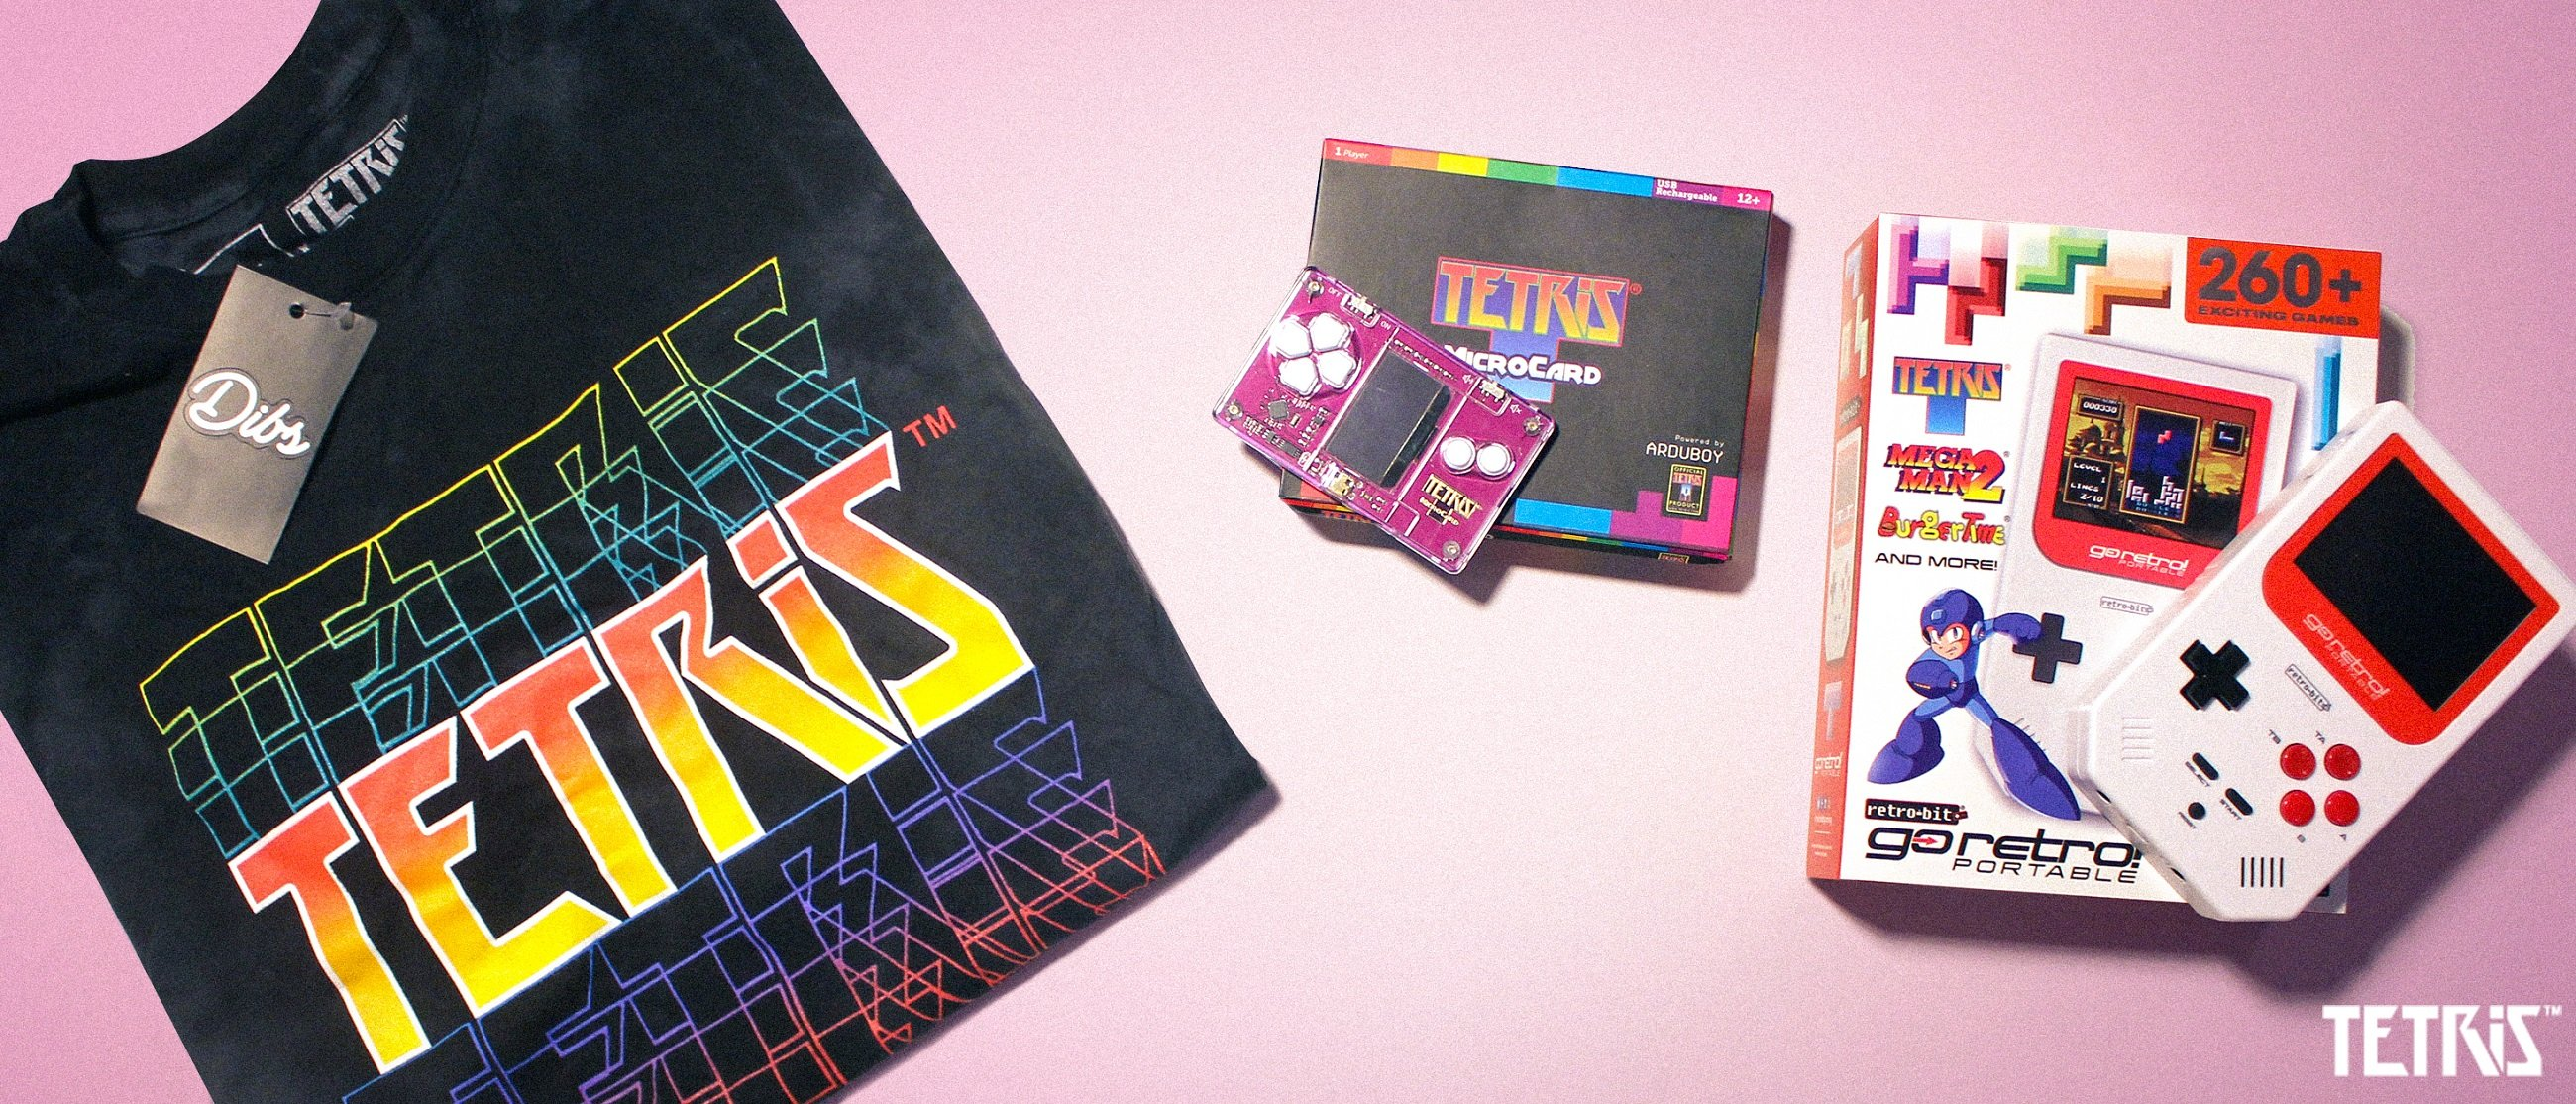 Tetris Gift Ideas for the Holidays